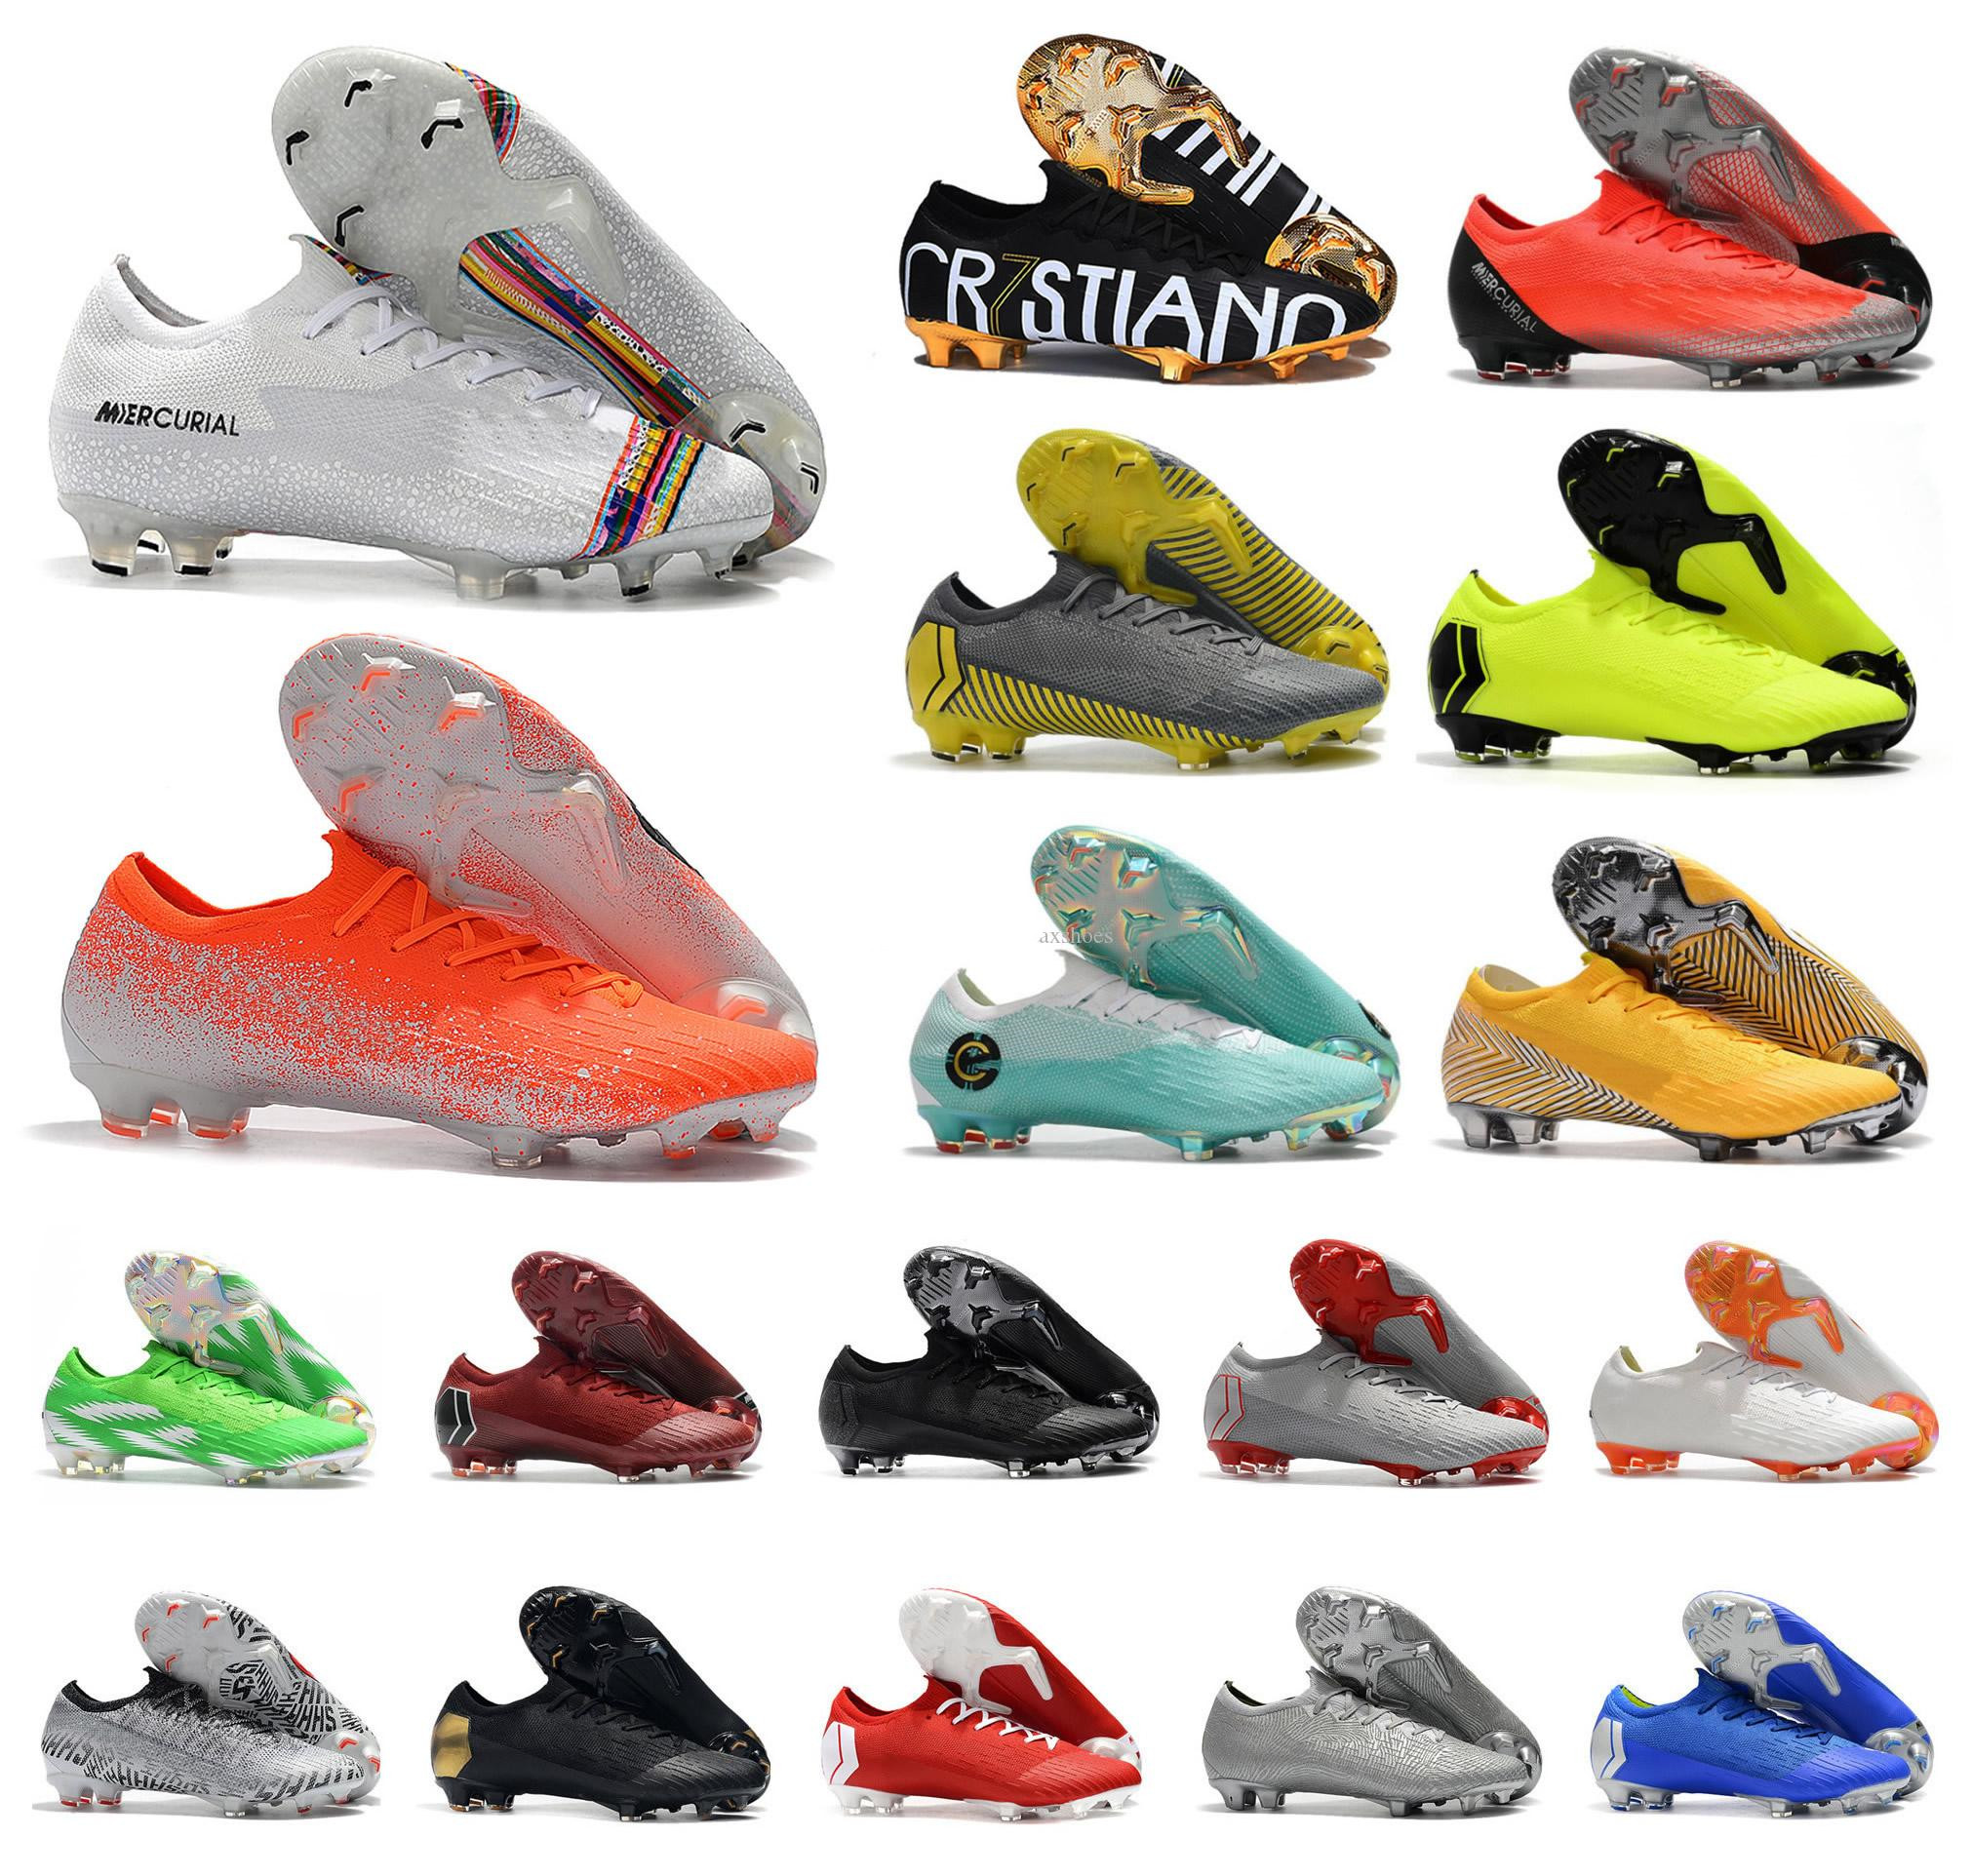 Hot Superfly VI <font><b>360</b></font> Elite FG KJ 6 XII 12 CR7 Ronaldo Neymar Mens Women Boys High Soccer <font><b>Shoes</b></font> Football Boots Cleats image